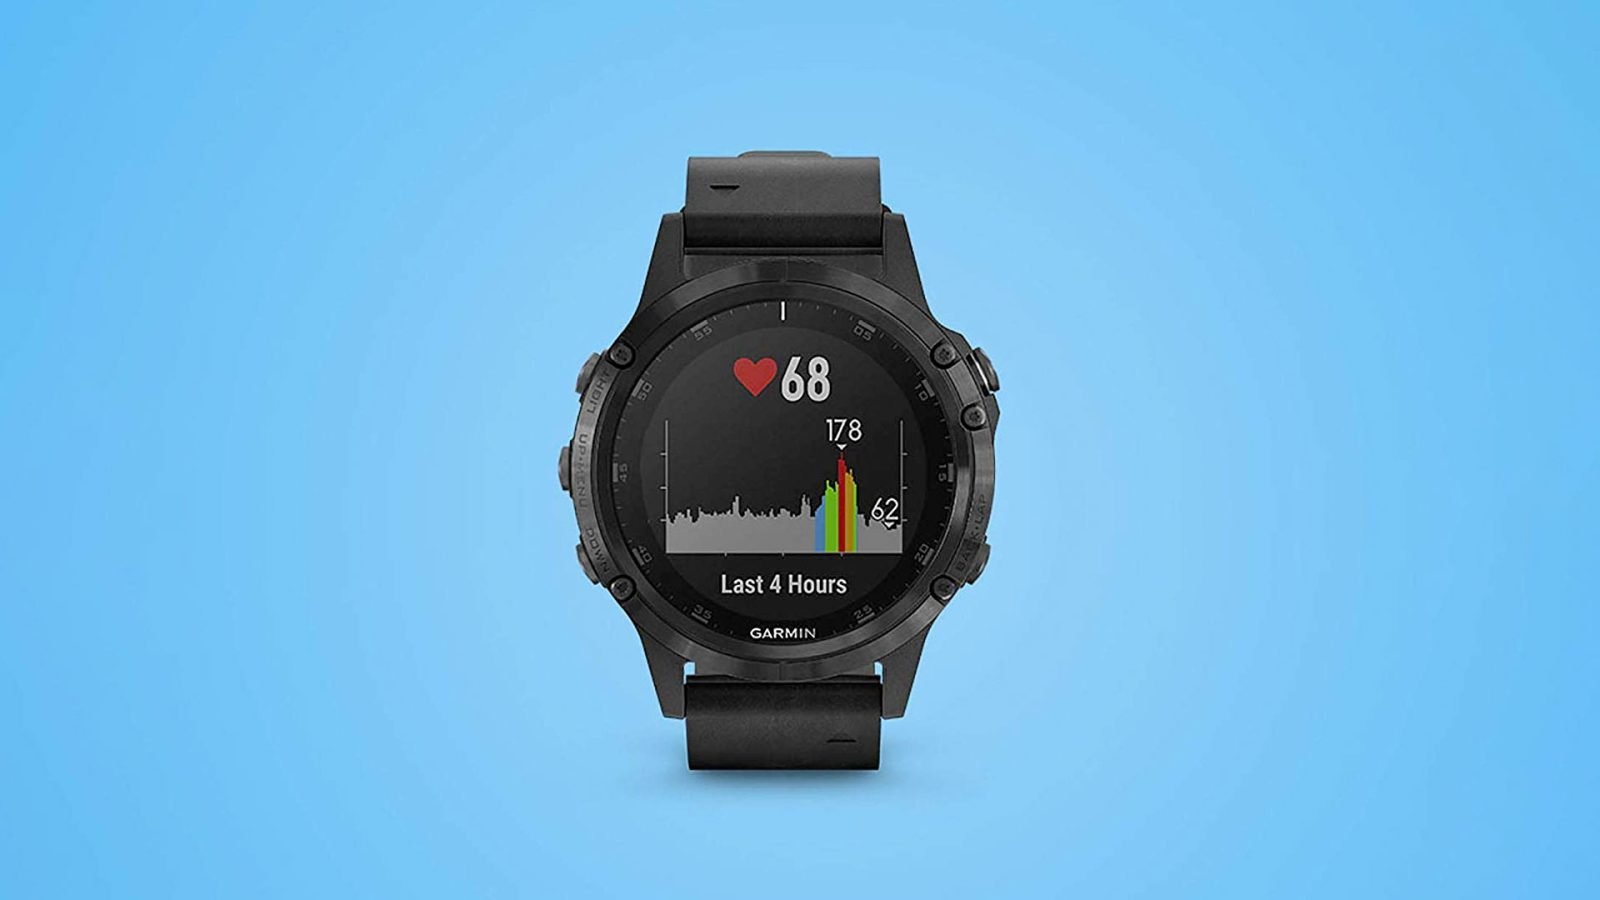 Garmin's fēnix 5 Plus has up to 12-day battery life for $550 (Over $100 off)